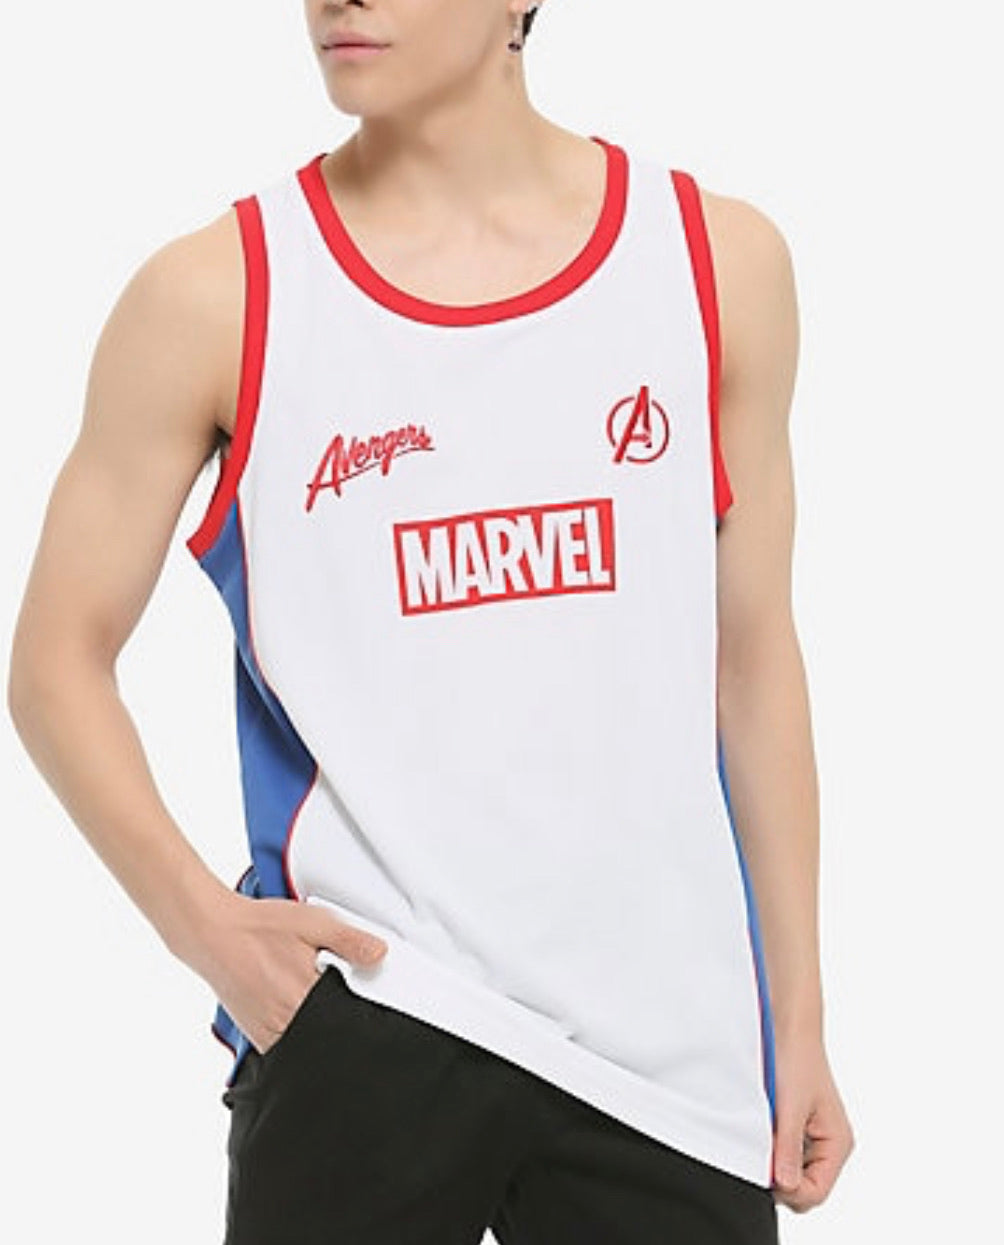 Marvel Basketball Jersey